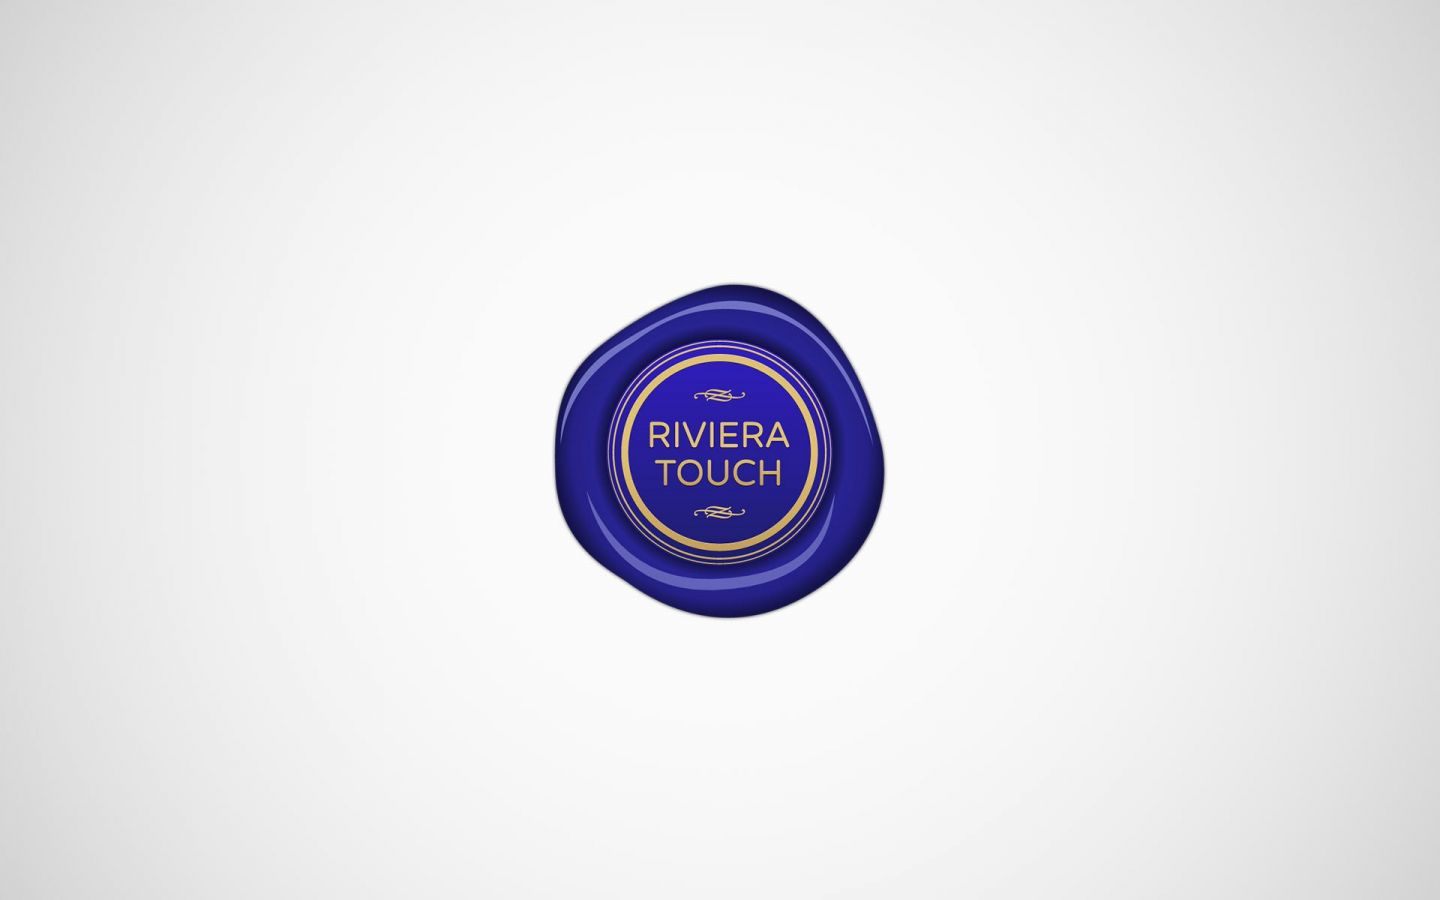 Riviera Touch Branding Project by Crevisio